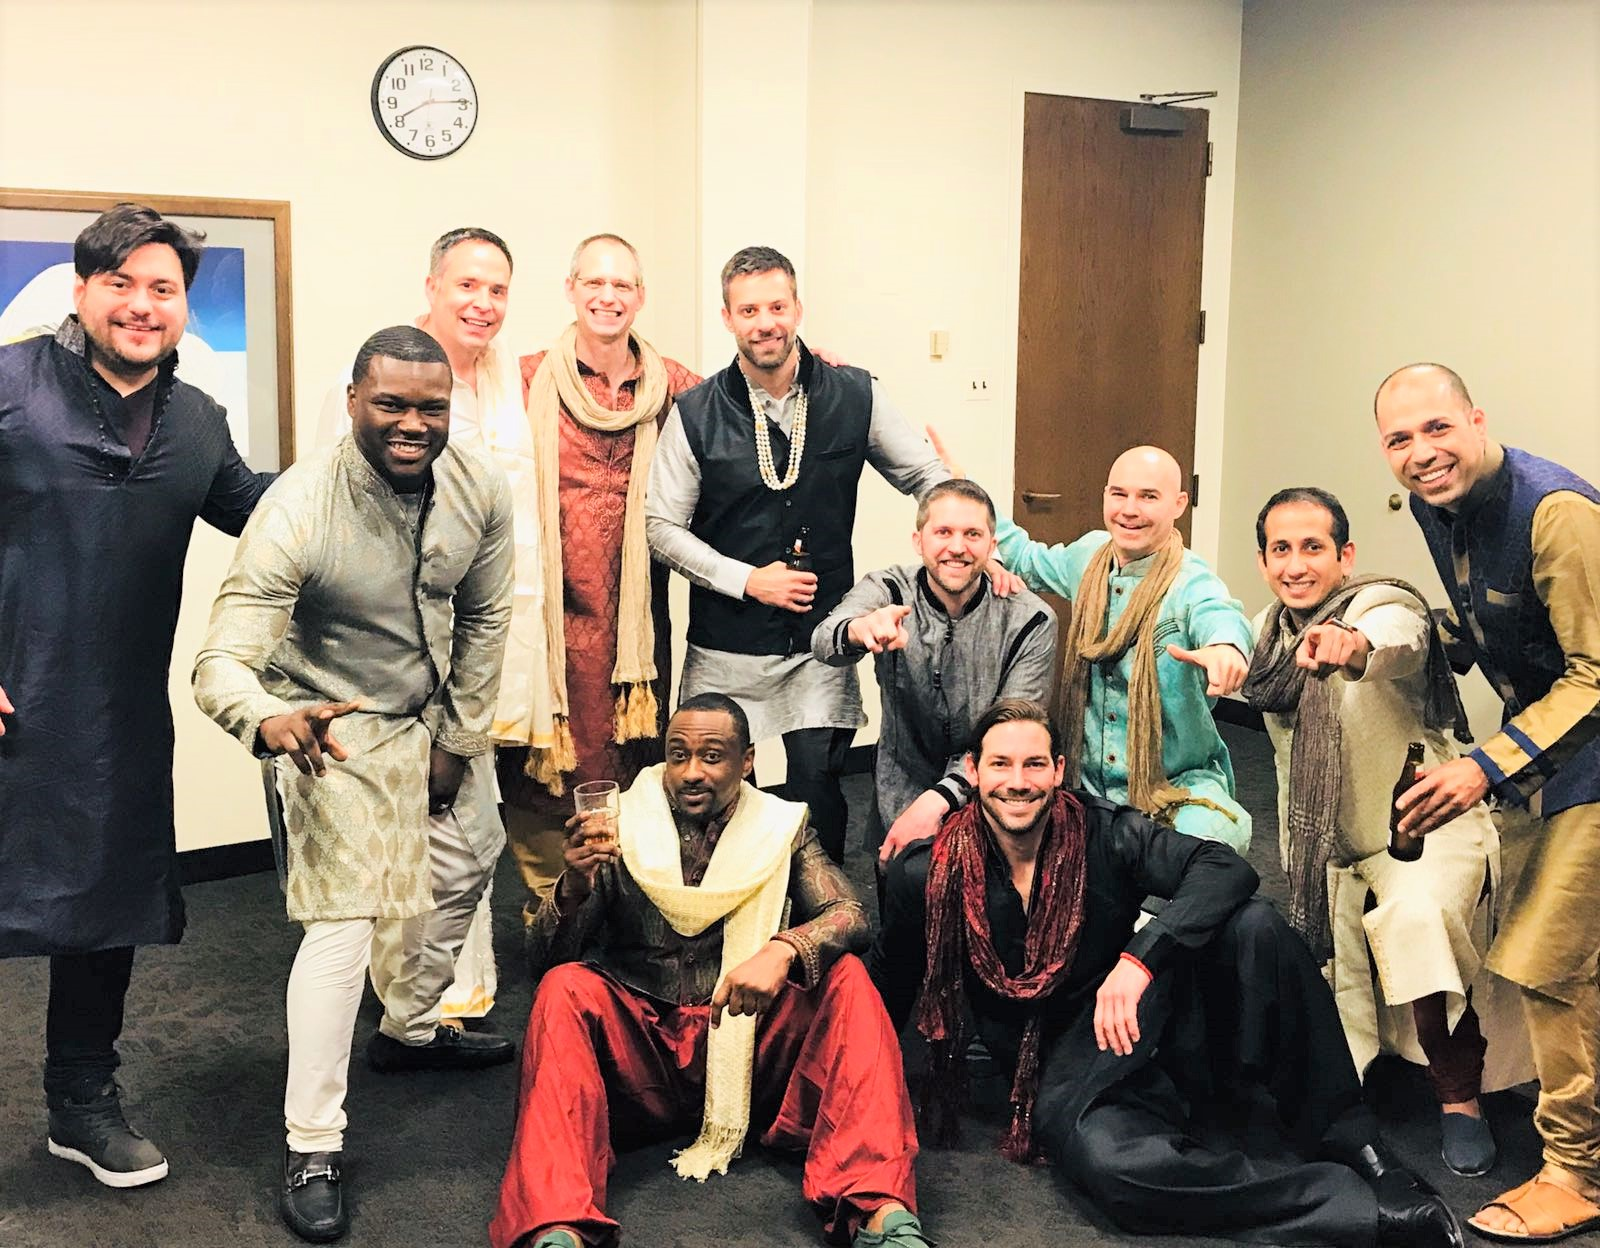 Fashion show Models.. Our very own EMBA Executives...(Left to right), Bruno Castro, Mario Ball, Vic Thomas, Dr. Dan Sidney, Ryan Walker, Eric Suddarth, T Hauseur, Sravan Pappu, Kohposh Kuda. Sitting (Left to right), Chet White, Dustin Childers